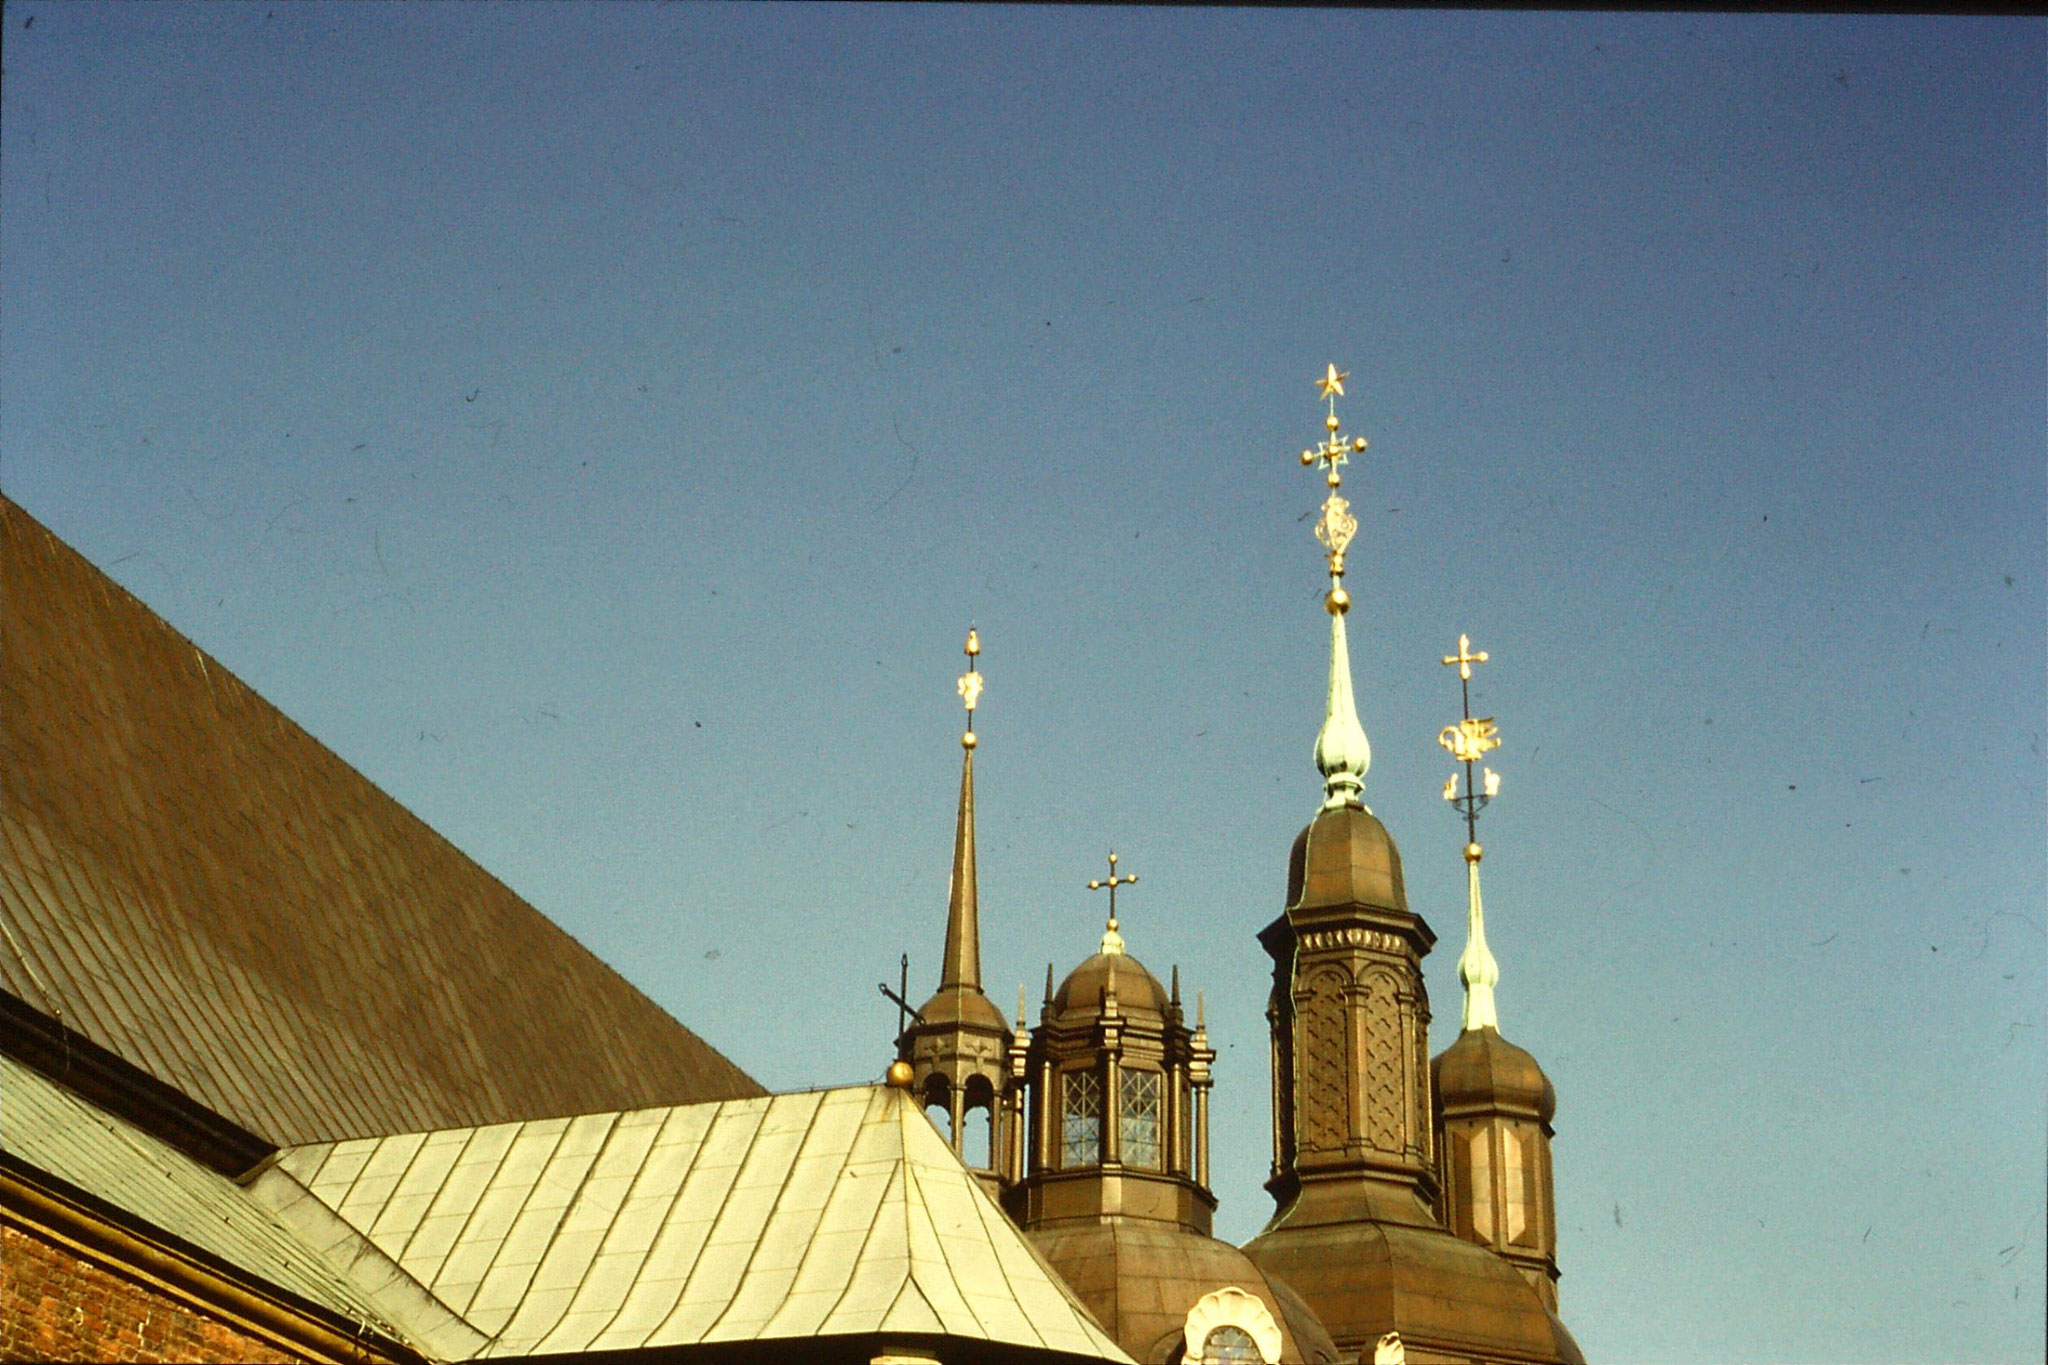 8/9/1988: 33: Riddarholms Church